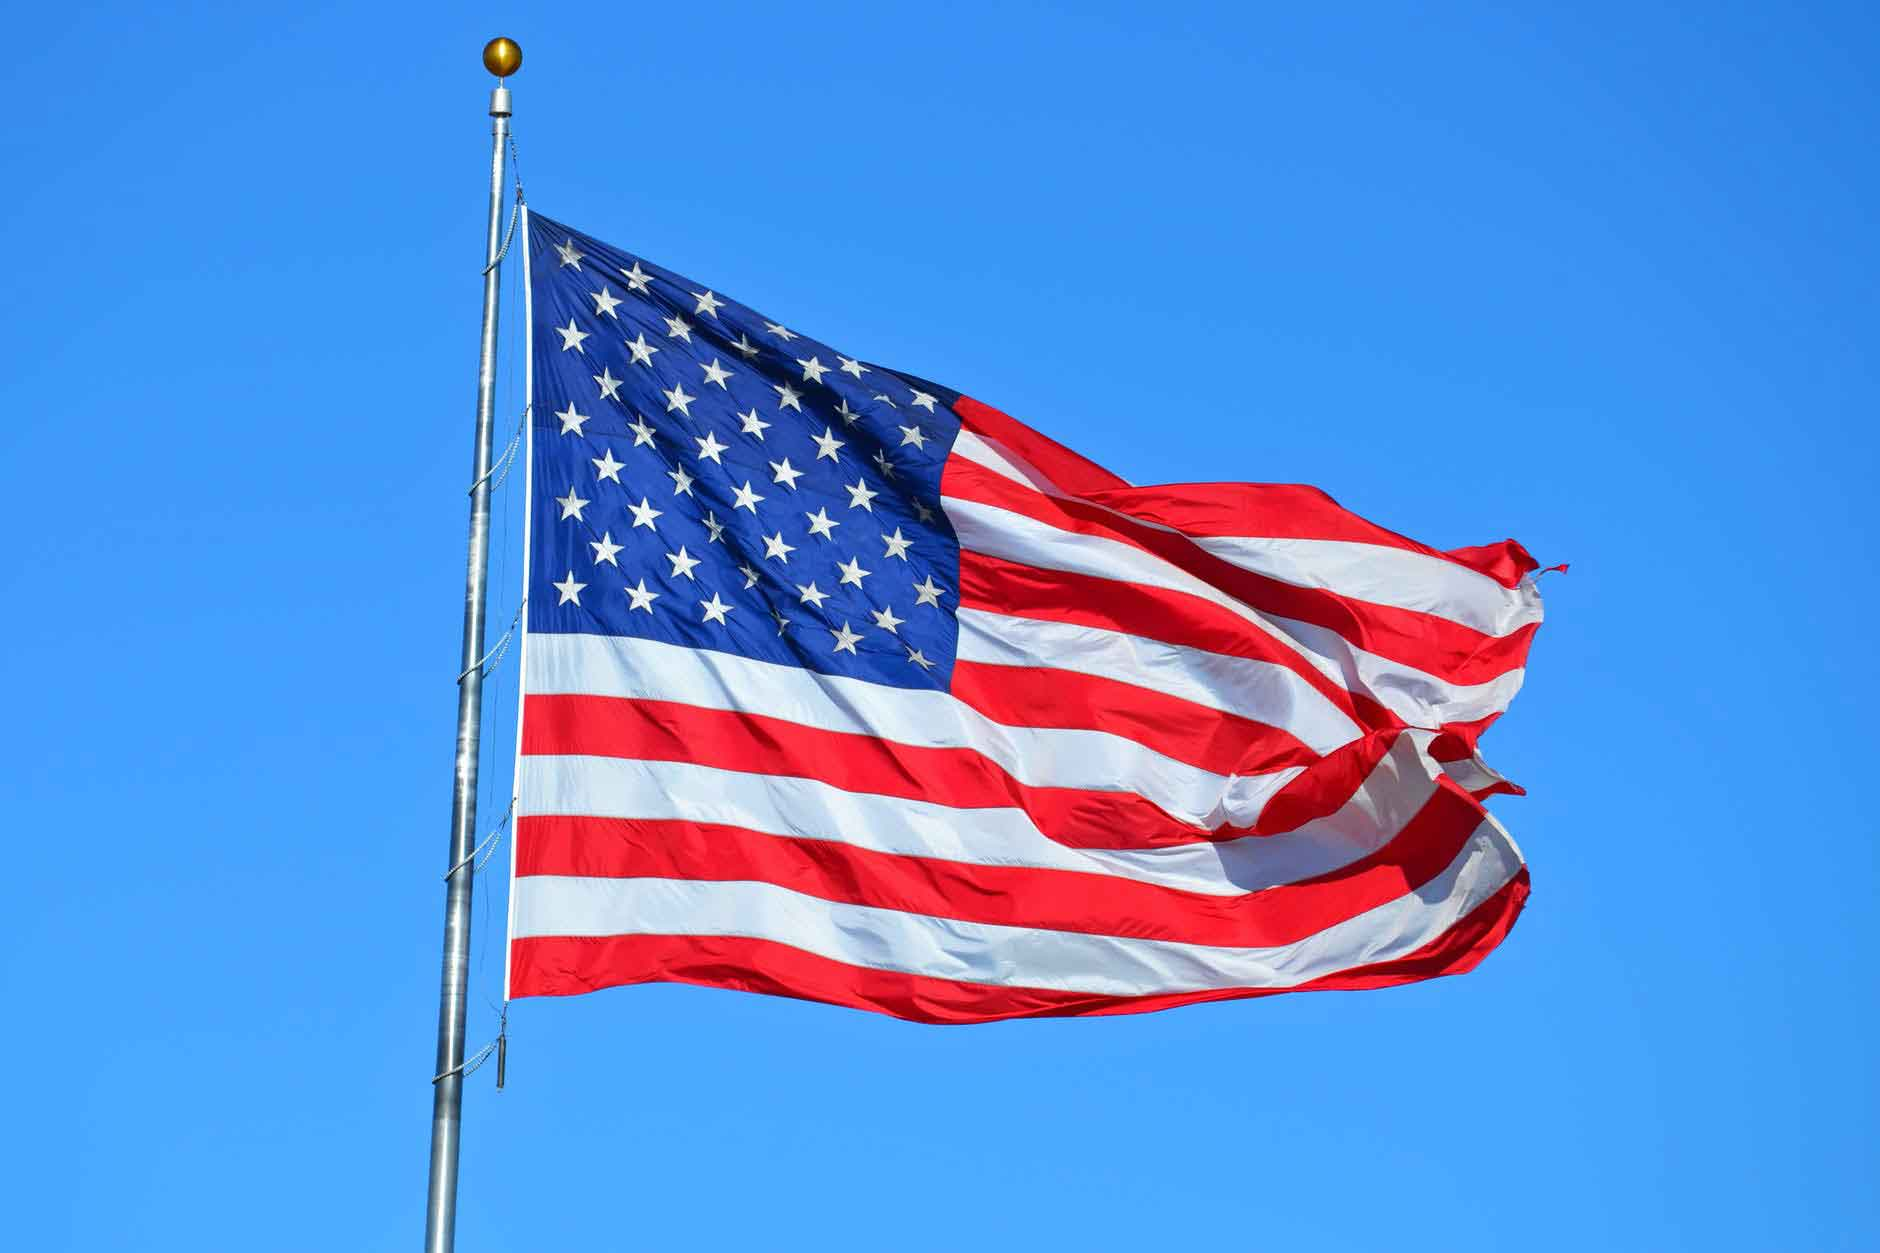 American Flag represent the entire nation